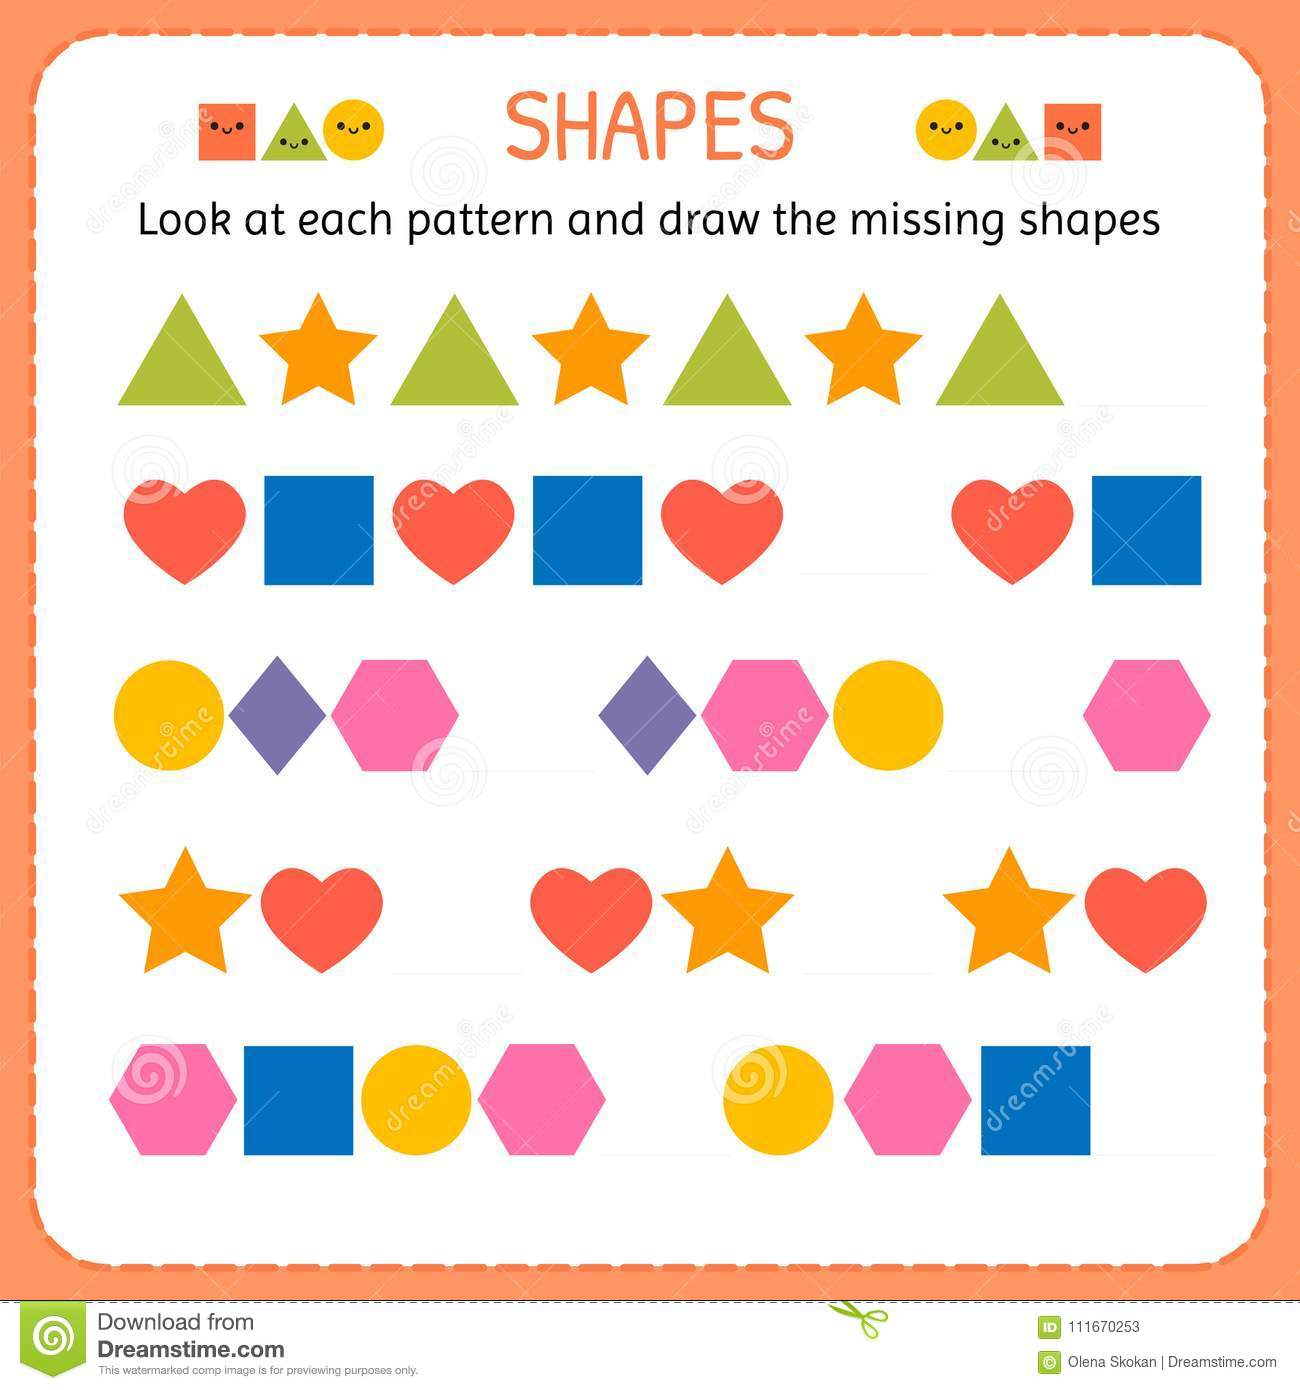 Look At Each Pattern And Draw The Missing Shapes Learn